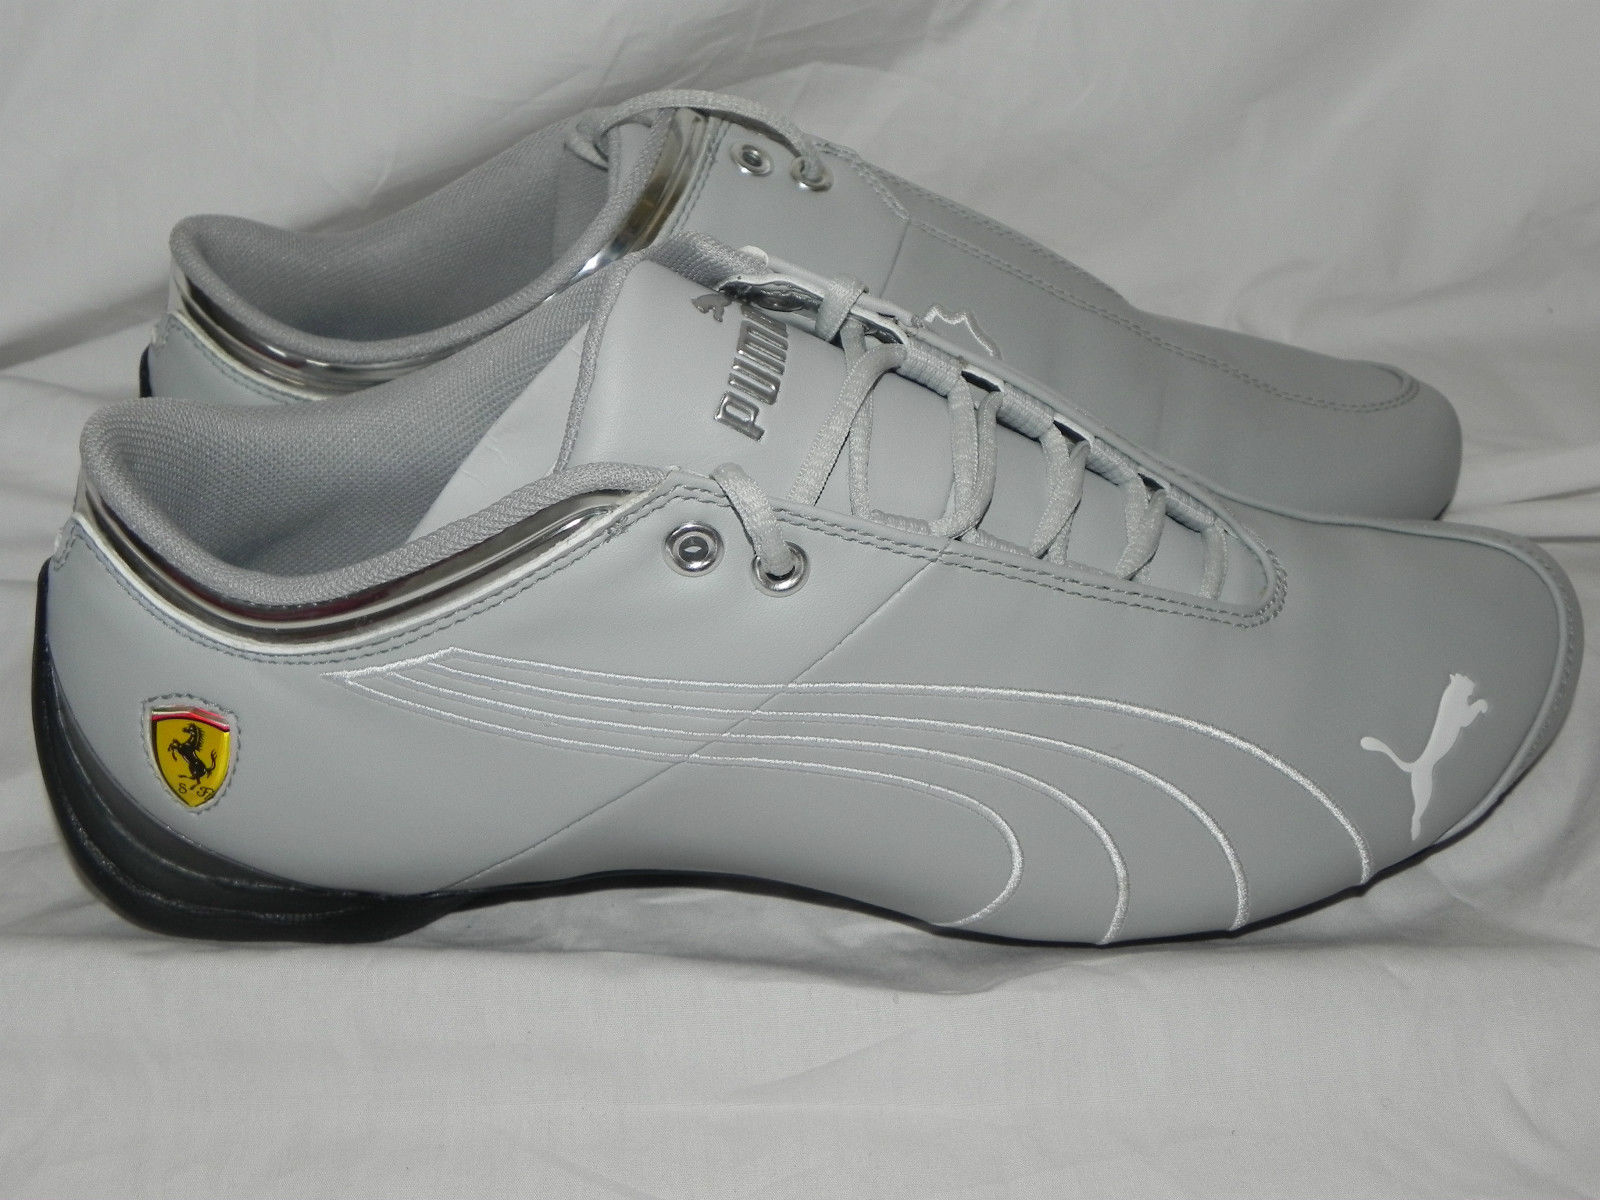 21a6d9ff84 New Puma Ferrari Men's Future Cat M1 Big Cat 1 30354701 | eBay ...